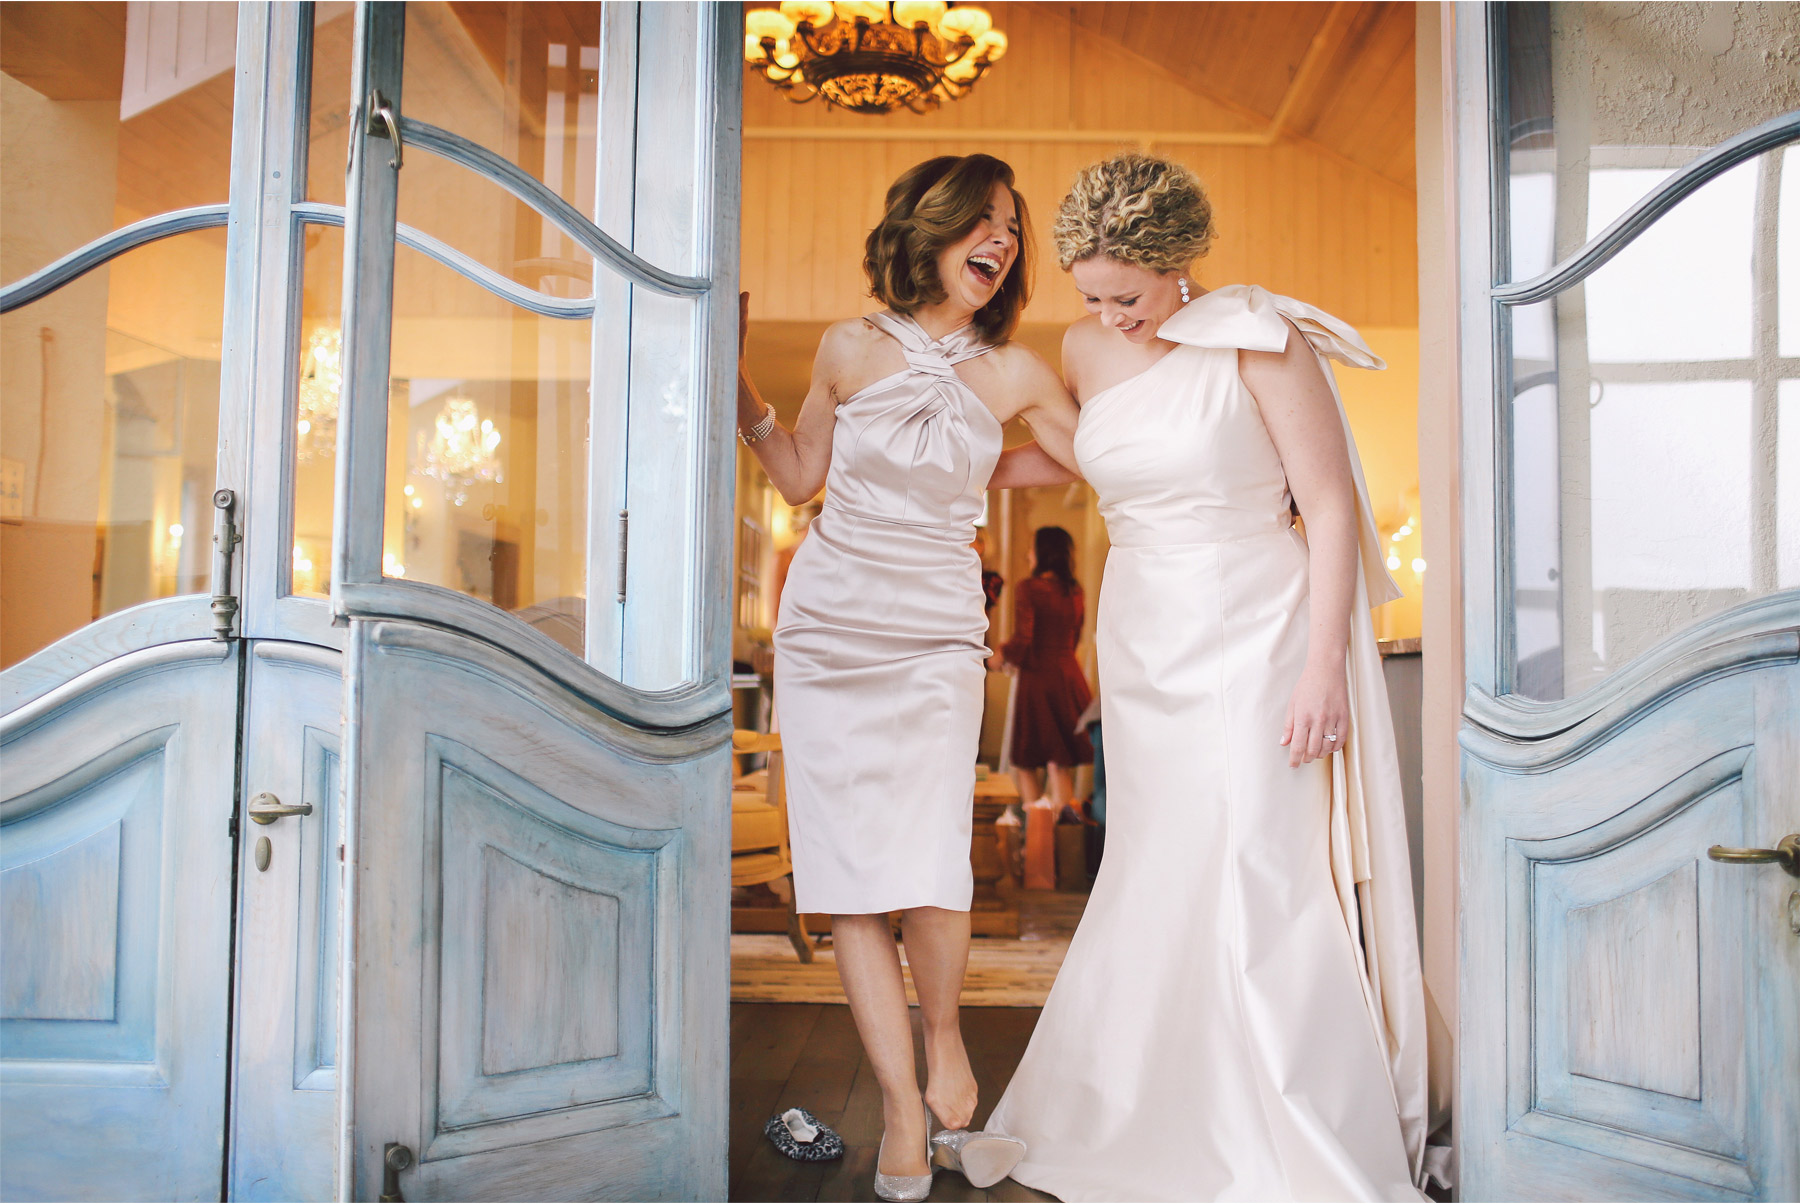 04-Minneapolis-Minnesota-Wedding-Photography-by-Vick-Photography-Bavaria-Downs-Mother-of-the-Bride-Jill-and-David.jpg